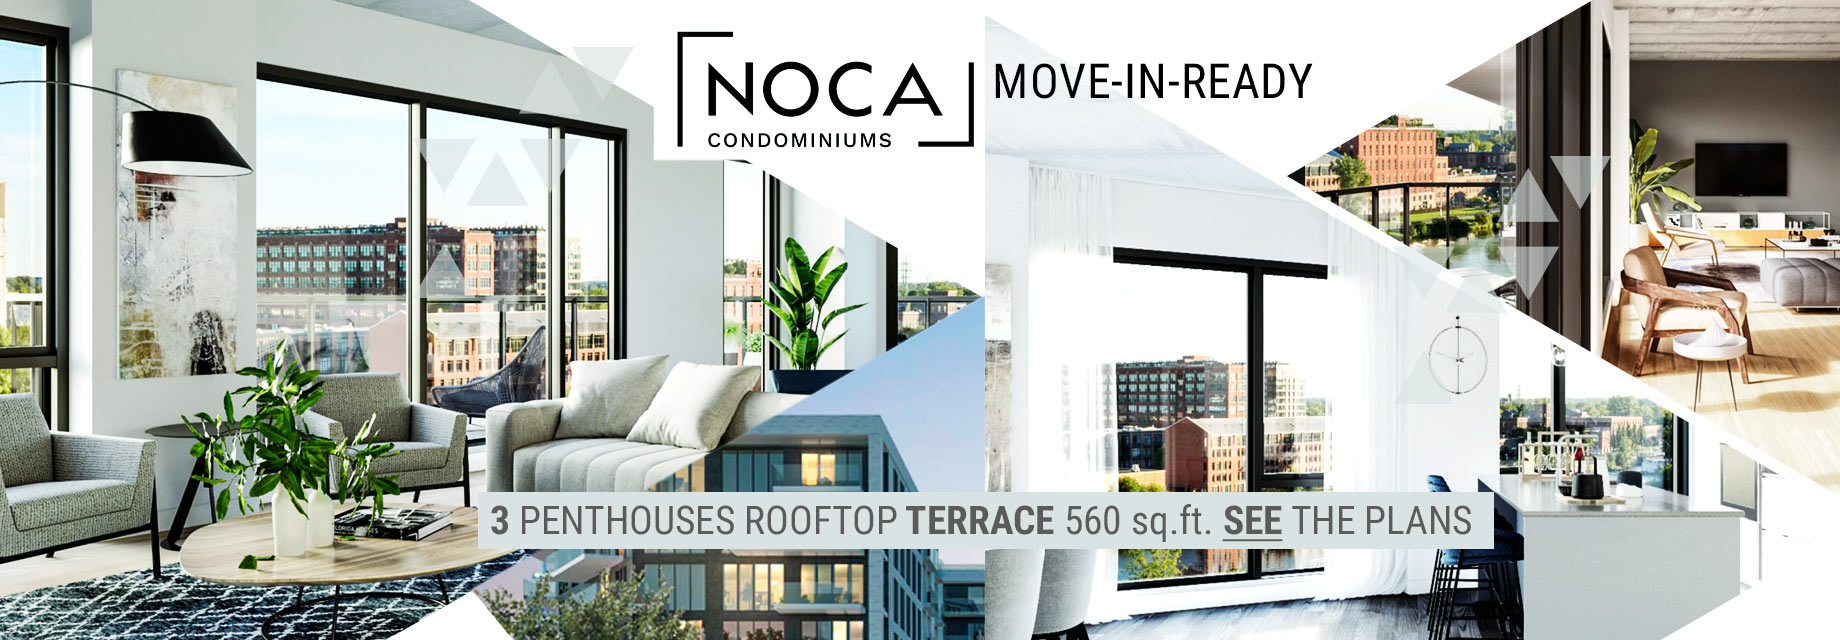 Only 3 fantastic penthouses with a roof top terrace of at leat 500 square feet.